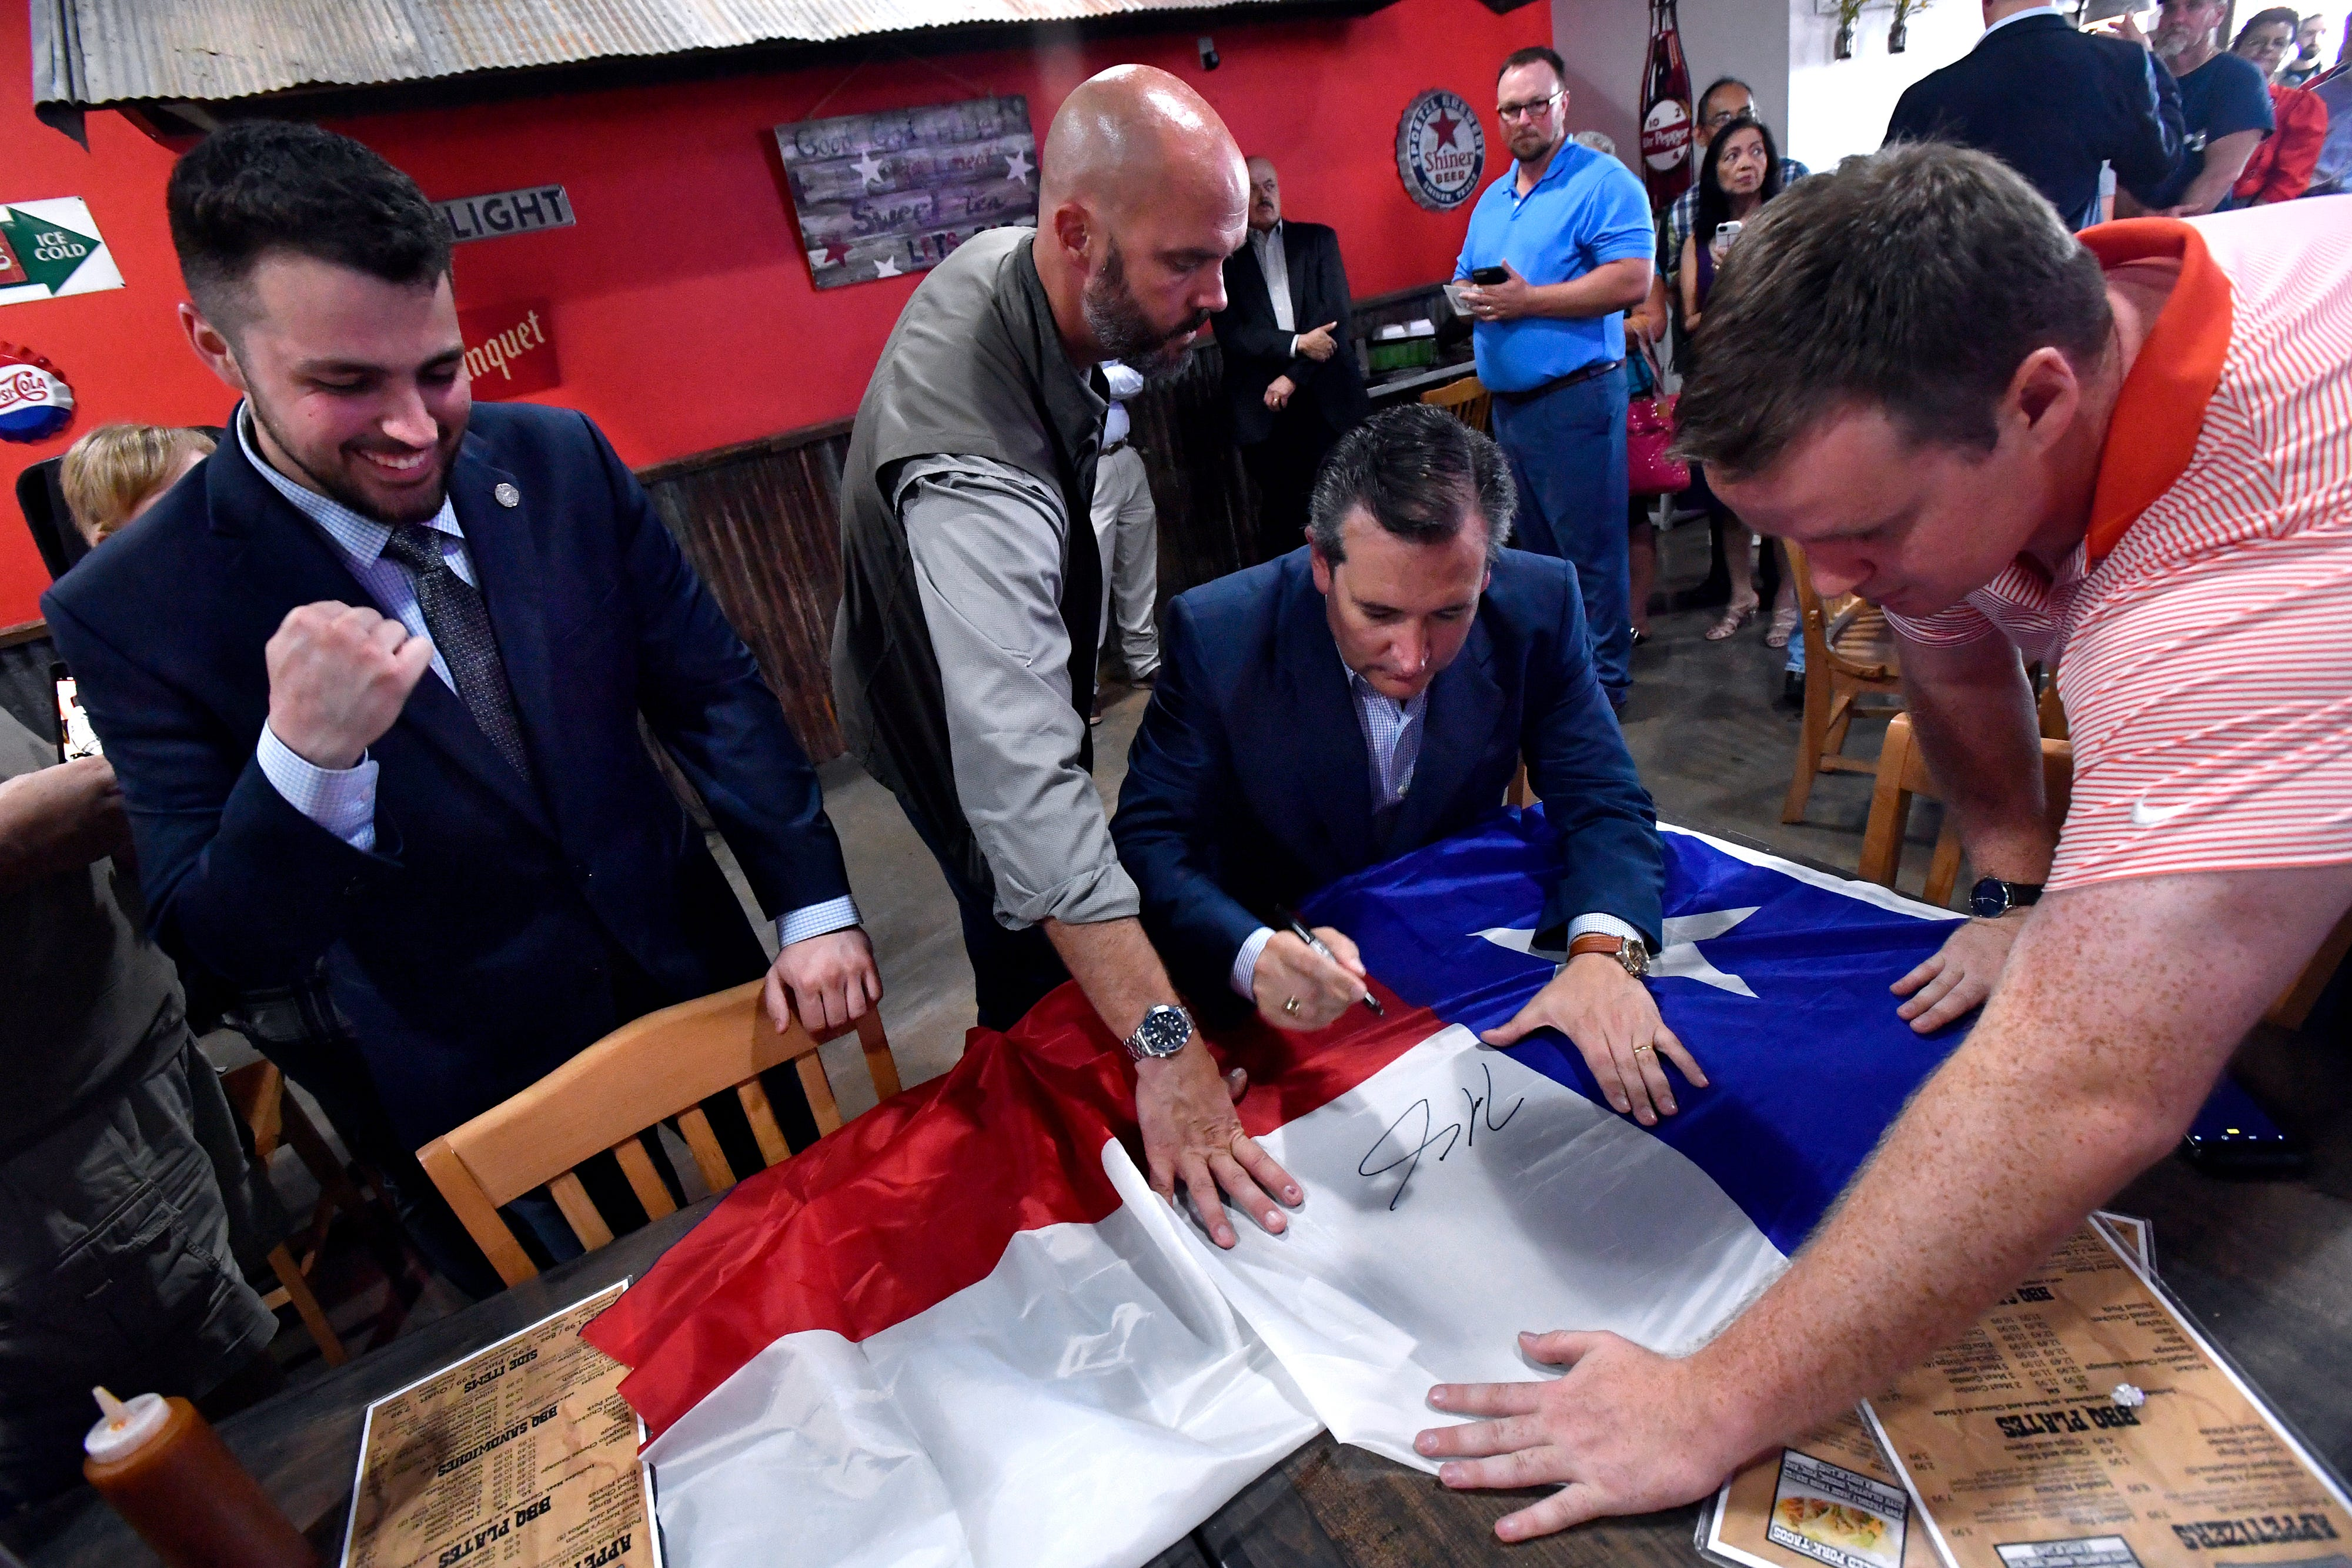 Tyler Hasenjaeger, a student at Abilene Christian University and chairman of the College Republicans, fist-pumps as U.S. Sen.Ted Cruz autographs his Texas flag Aug. 30 at a campaign meet-and-greet at the Catclaw Drive location of Betty Roses' Little Brisket in Abilene.